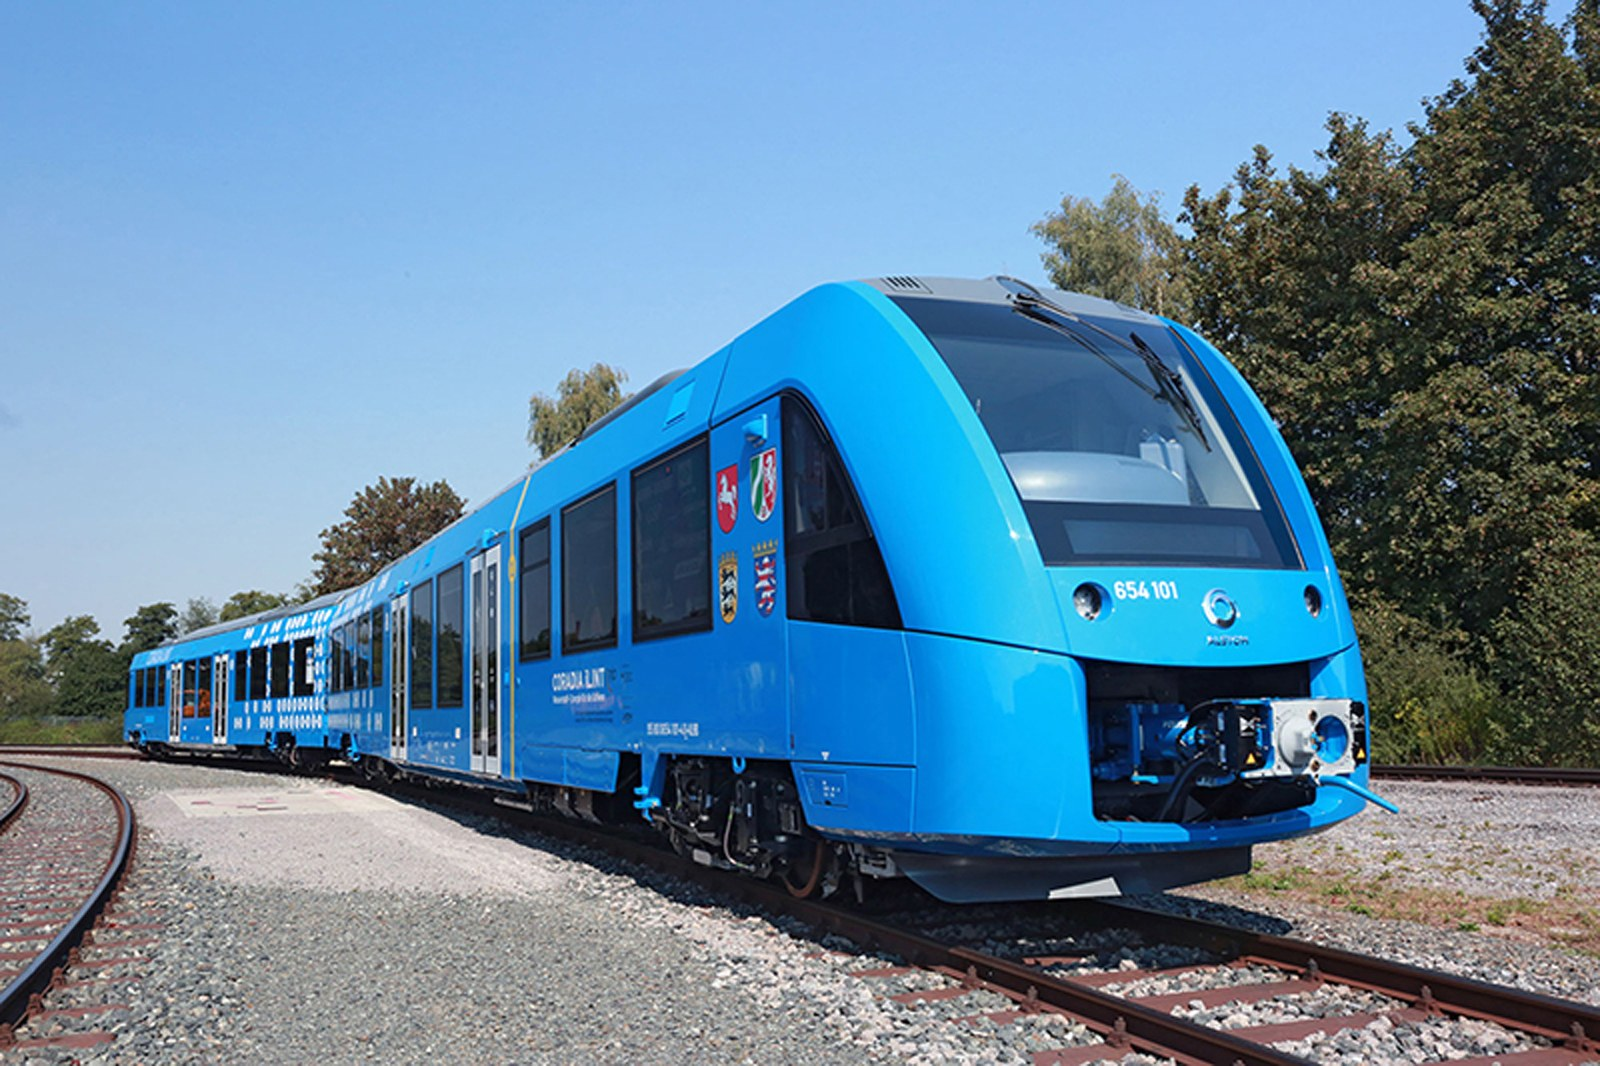 hydrogen fuel cell train offers pollution free rail trips